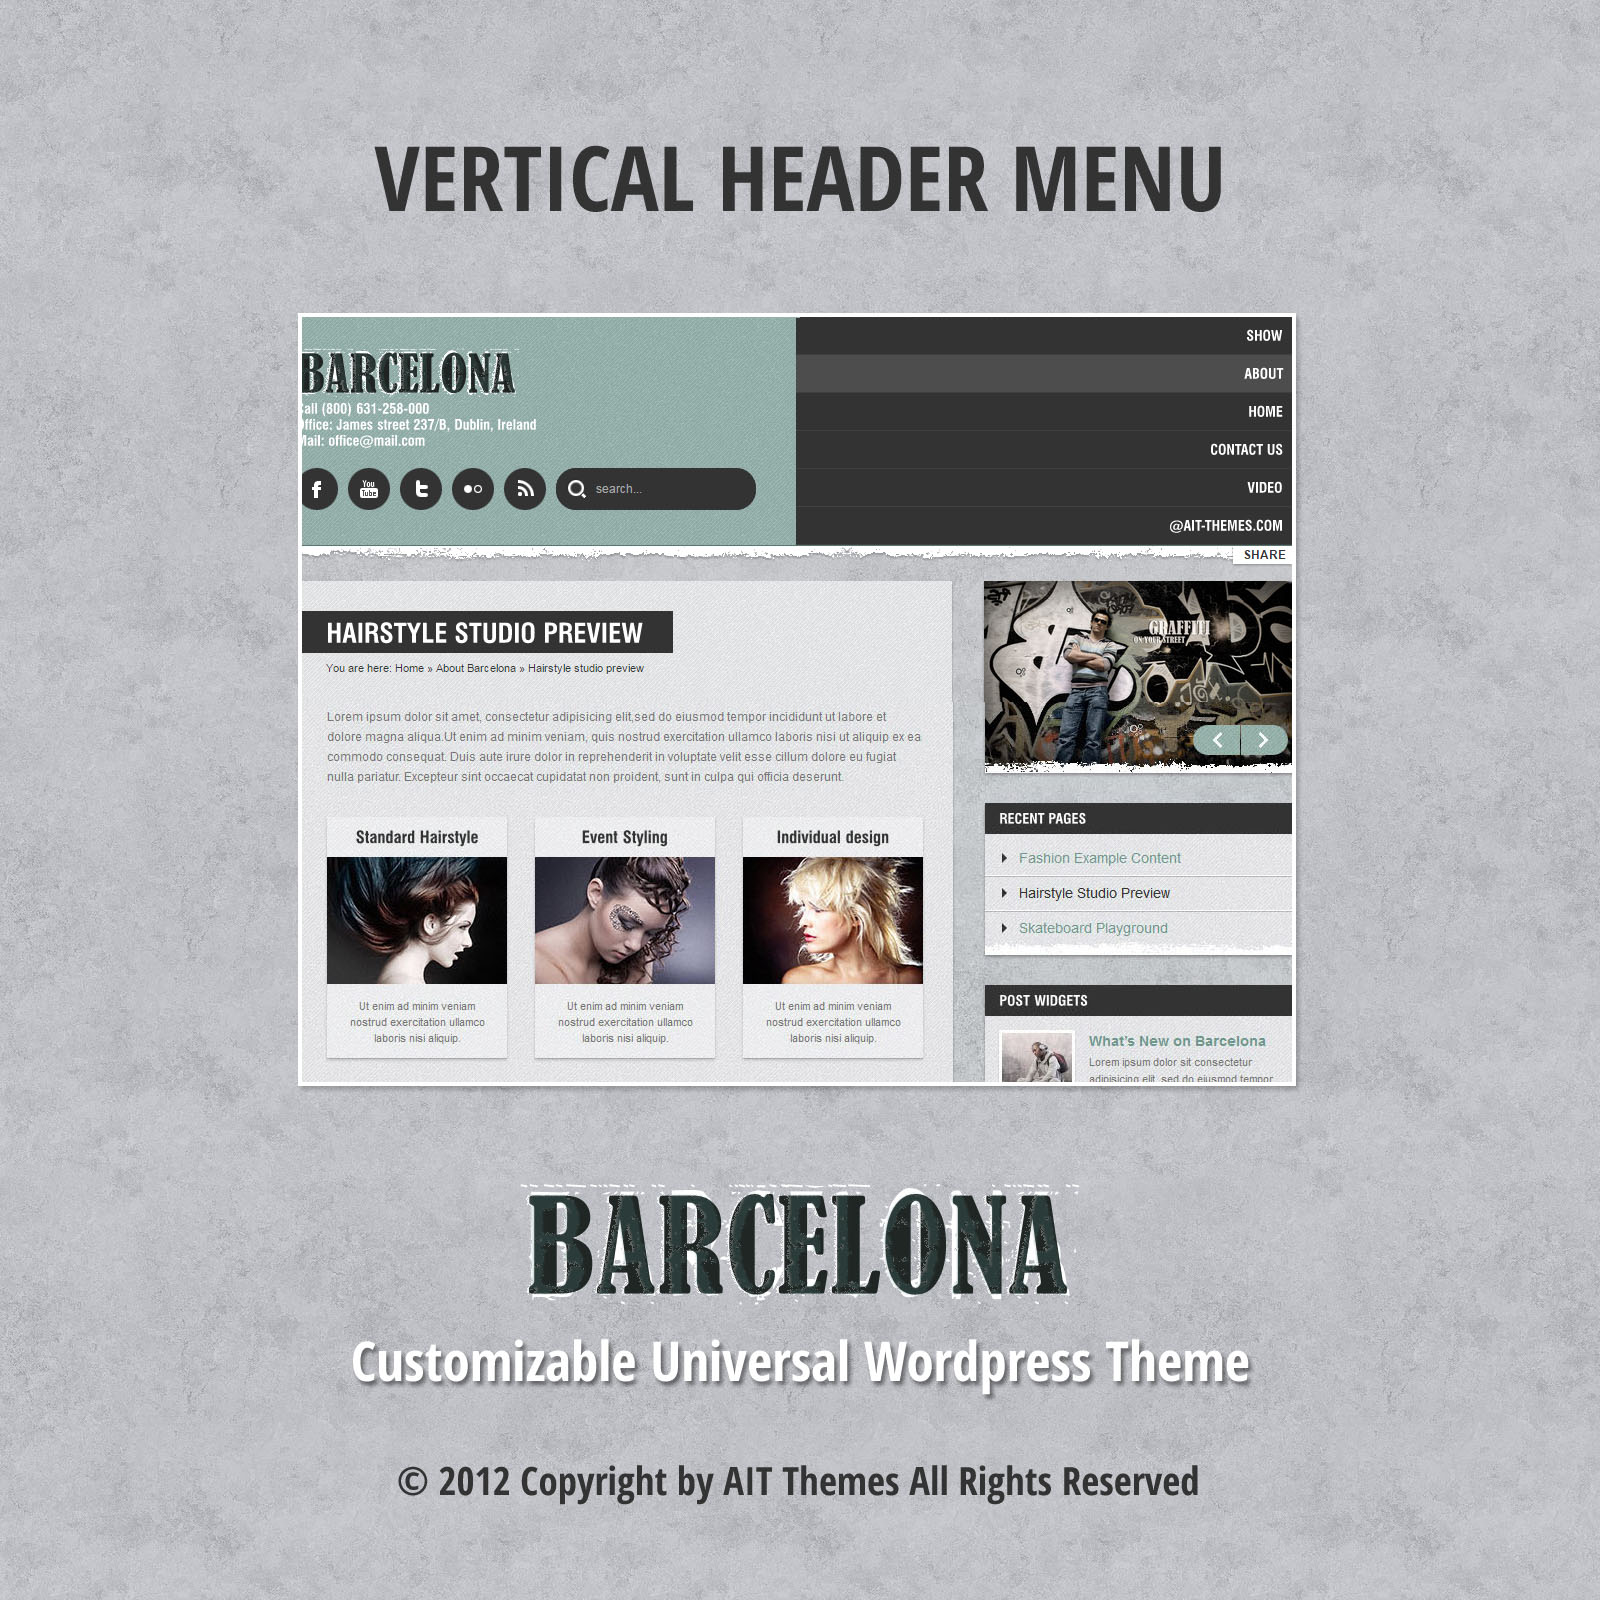 Lodret header menu